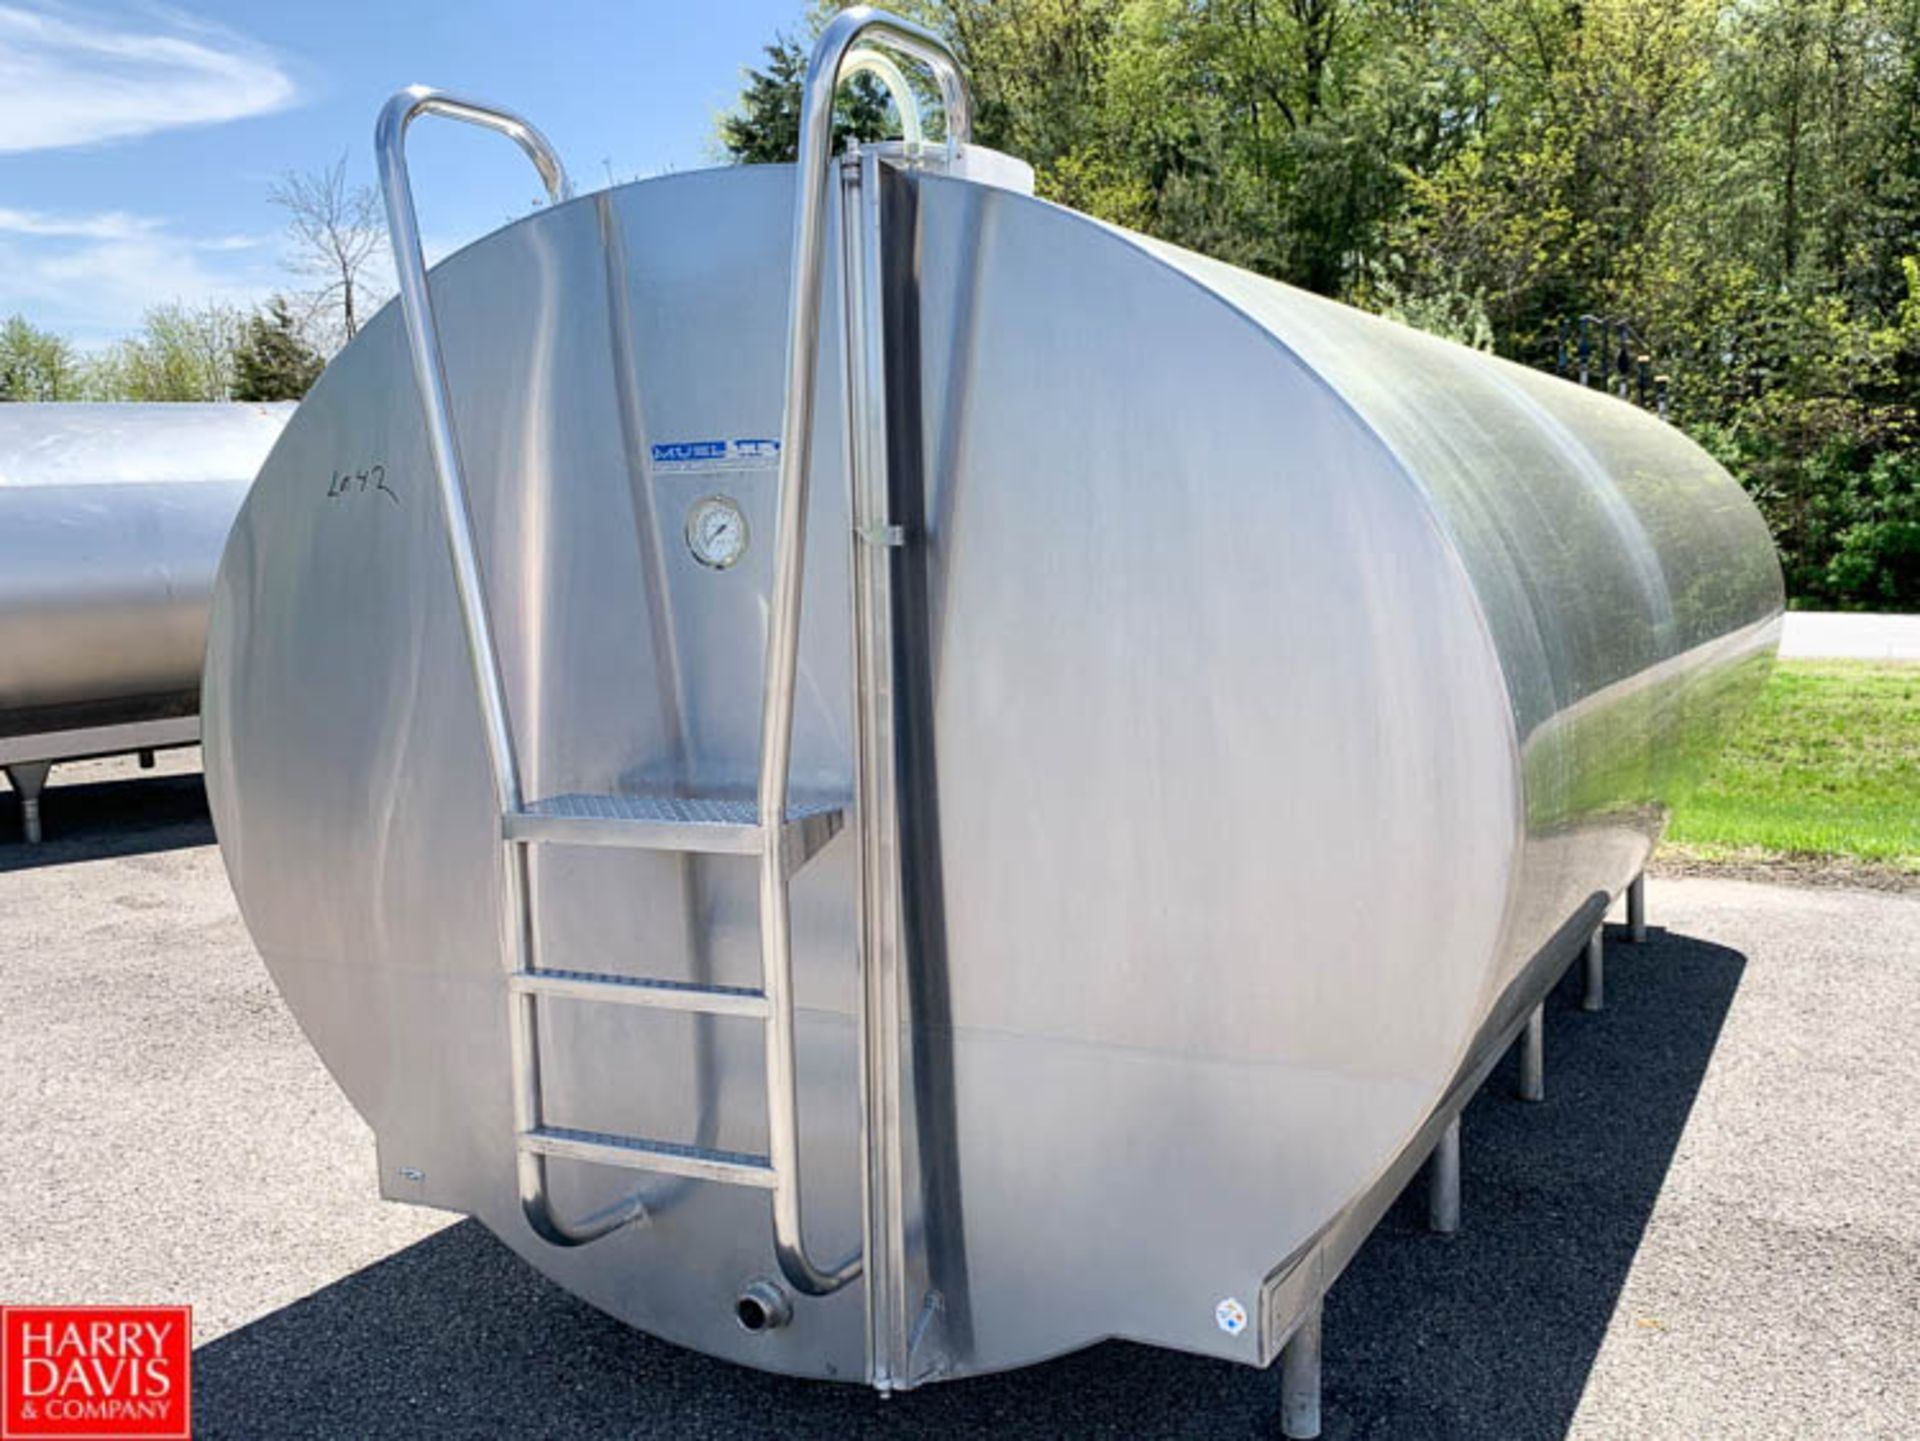 Lot 42 - Mueller 3,000 Gallon ALL S/S Freon Jacketed Oval Tank, Model OE, S/N 17089A - Rigging Fee: $50